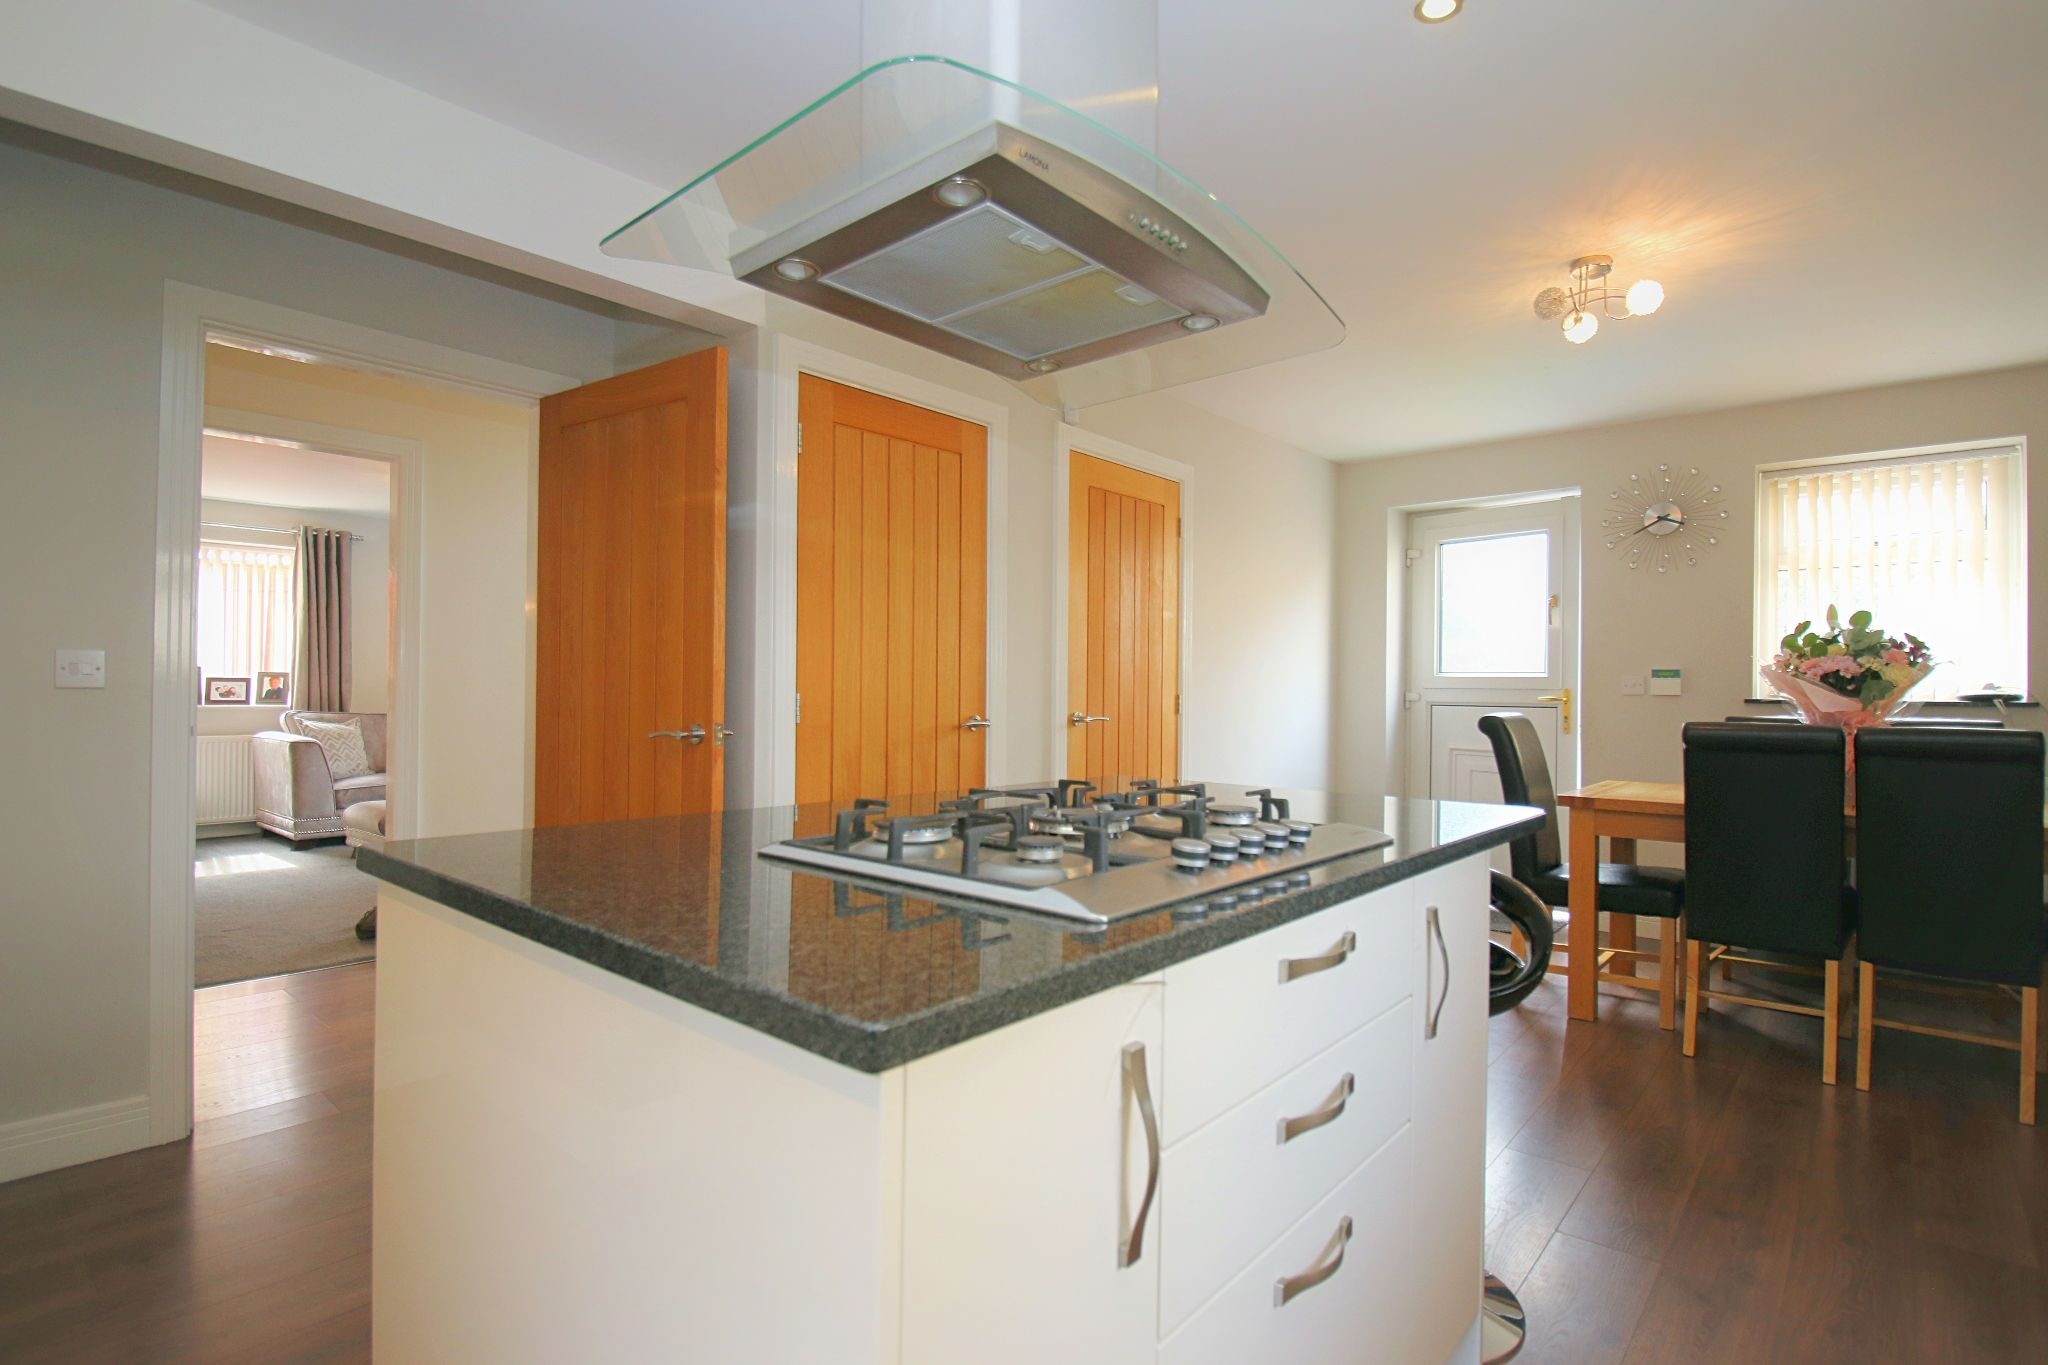 6 Bedroom Detached House For Sale - Photograph 16